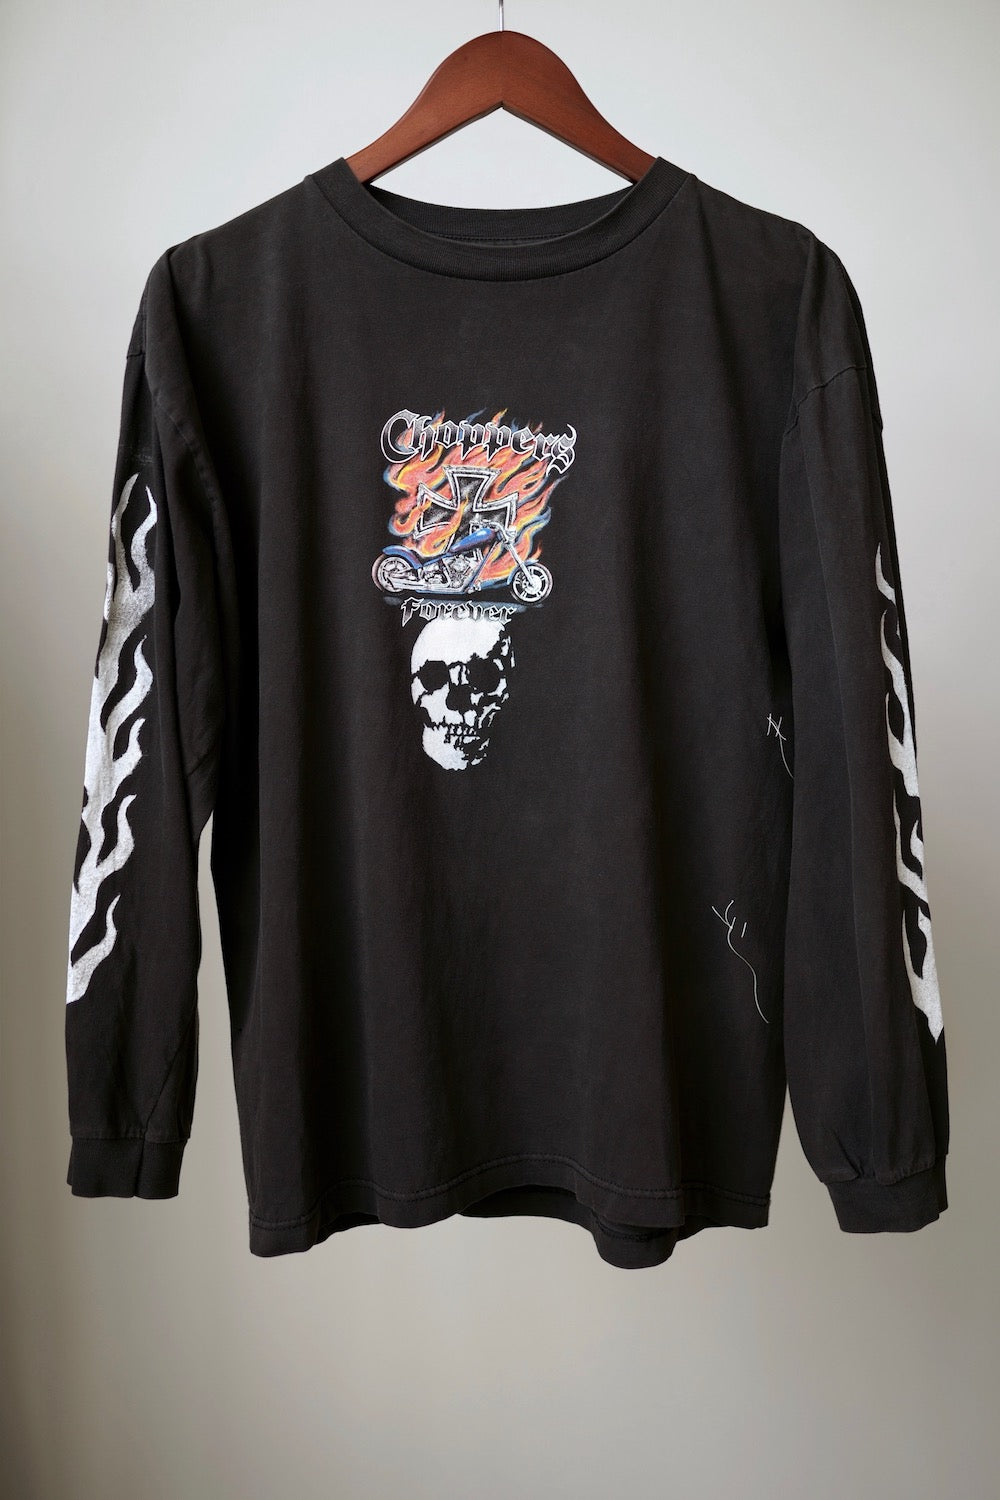 WSL Customized Vintage Reversible L/S Choppers Forever Time T-Shirt